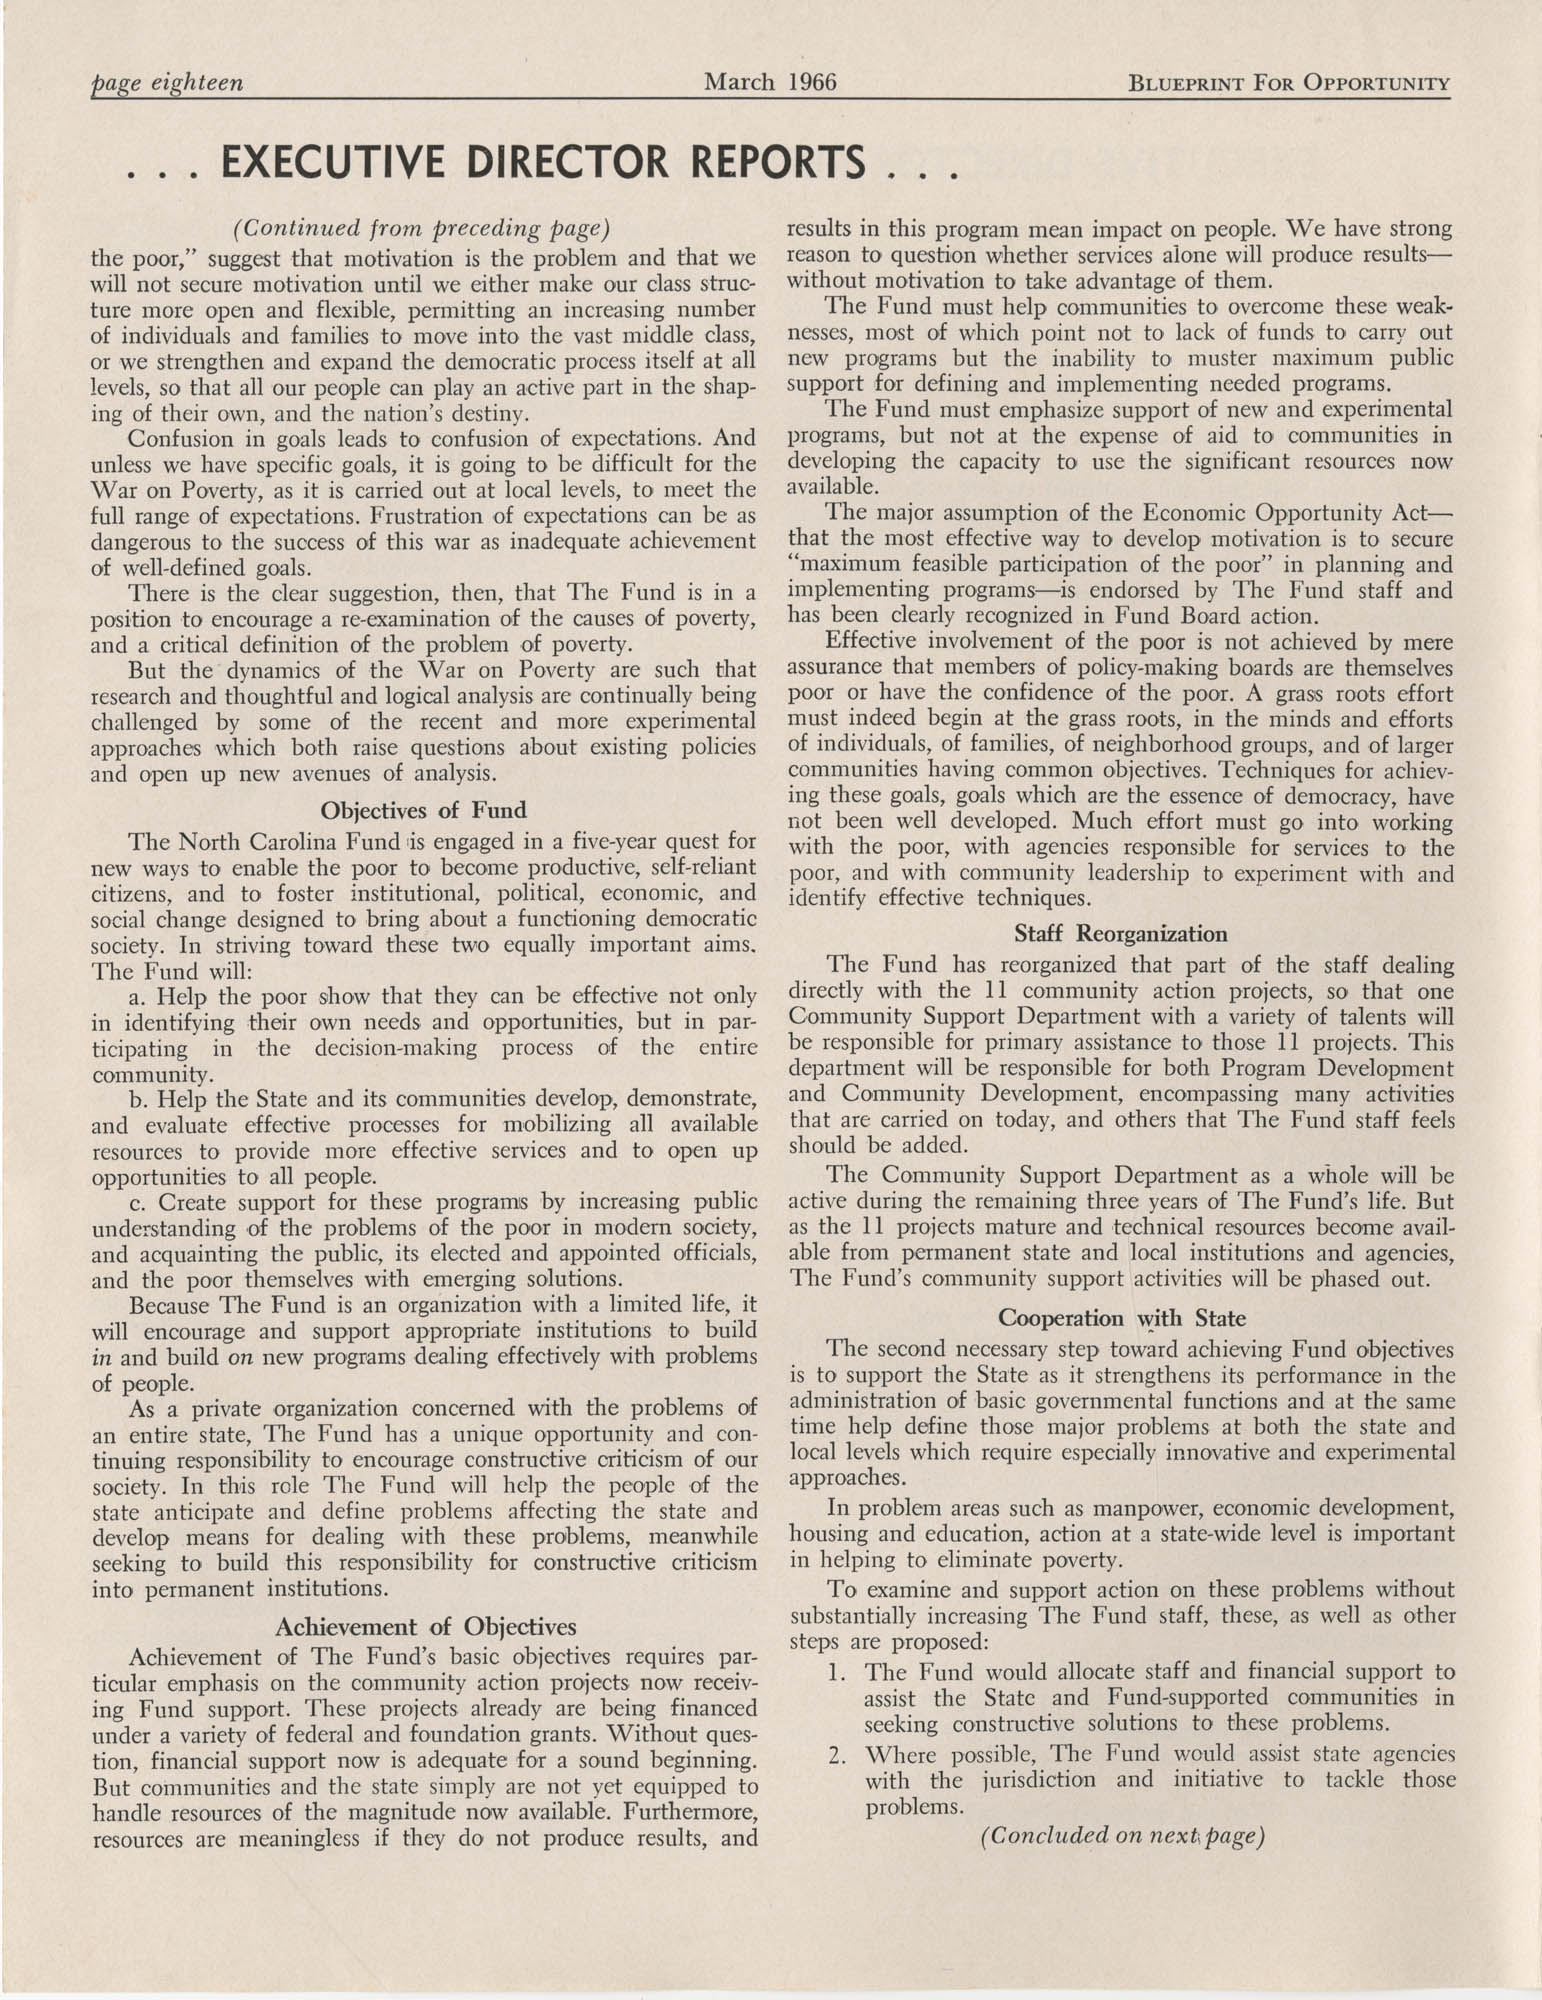 Blueprint for Opportunity, Vol. 2, No. 1, Page 18